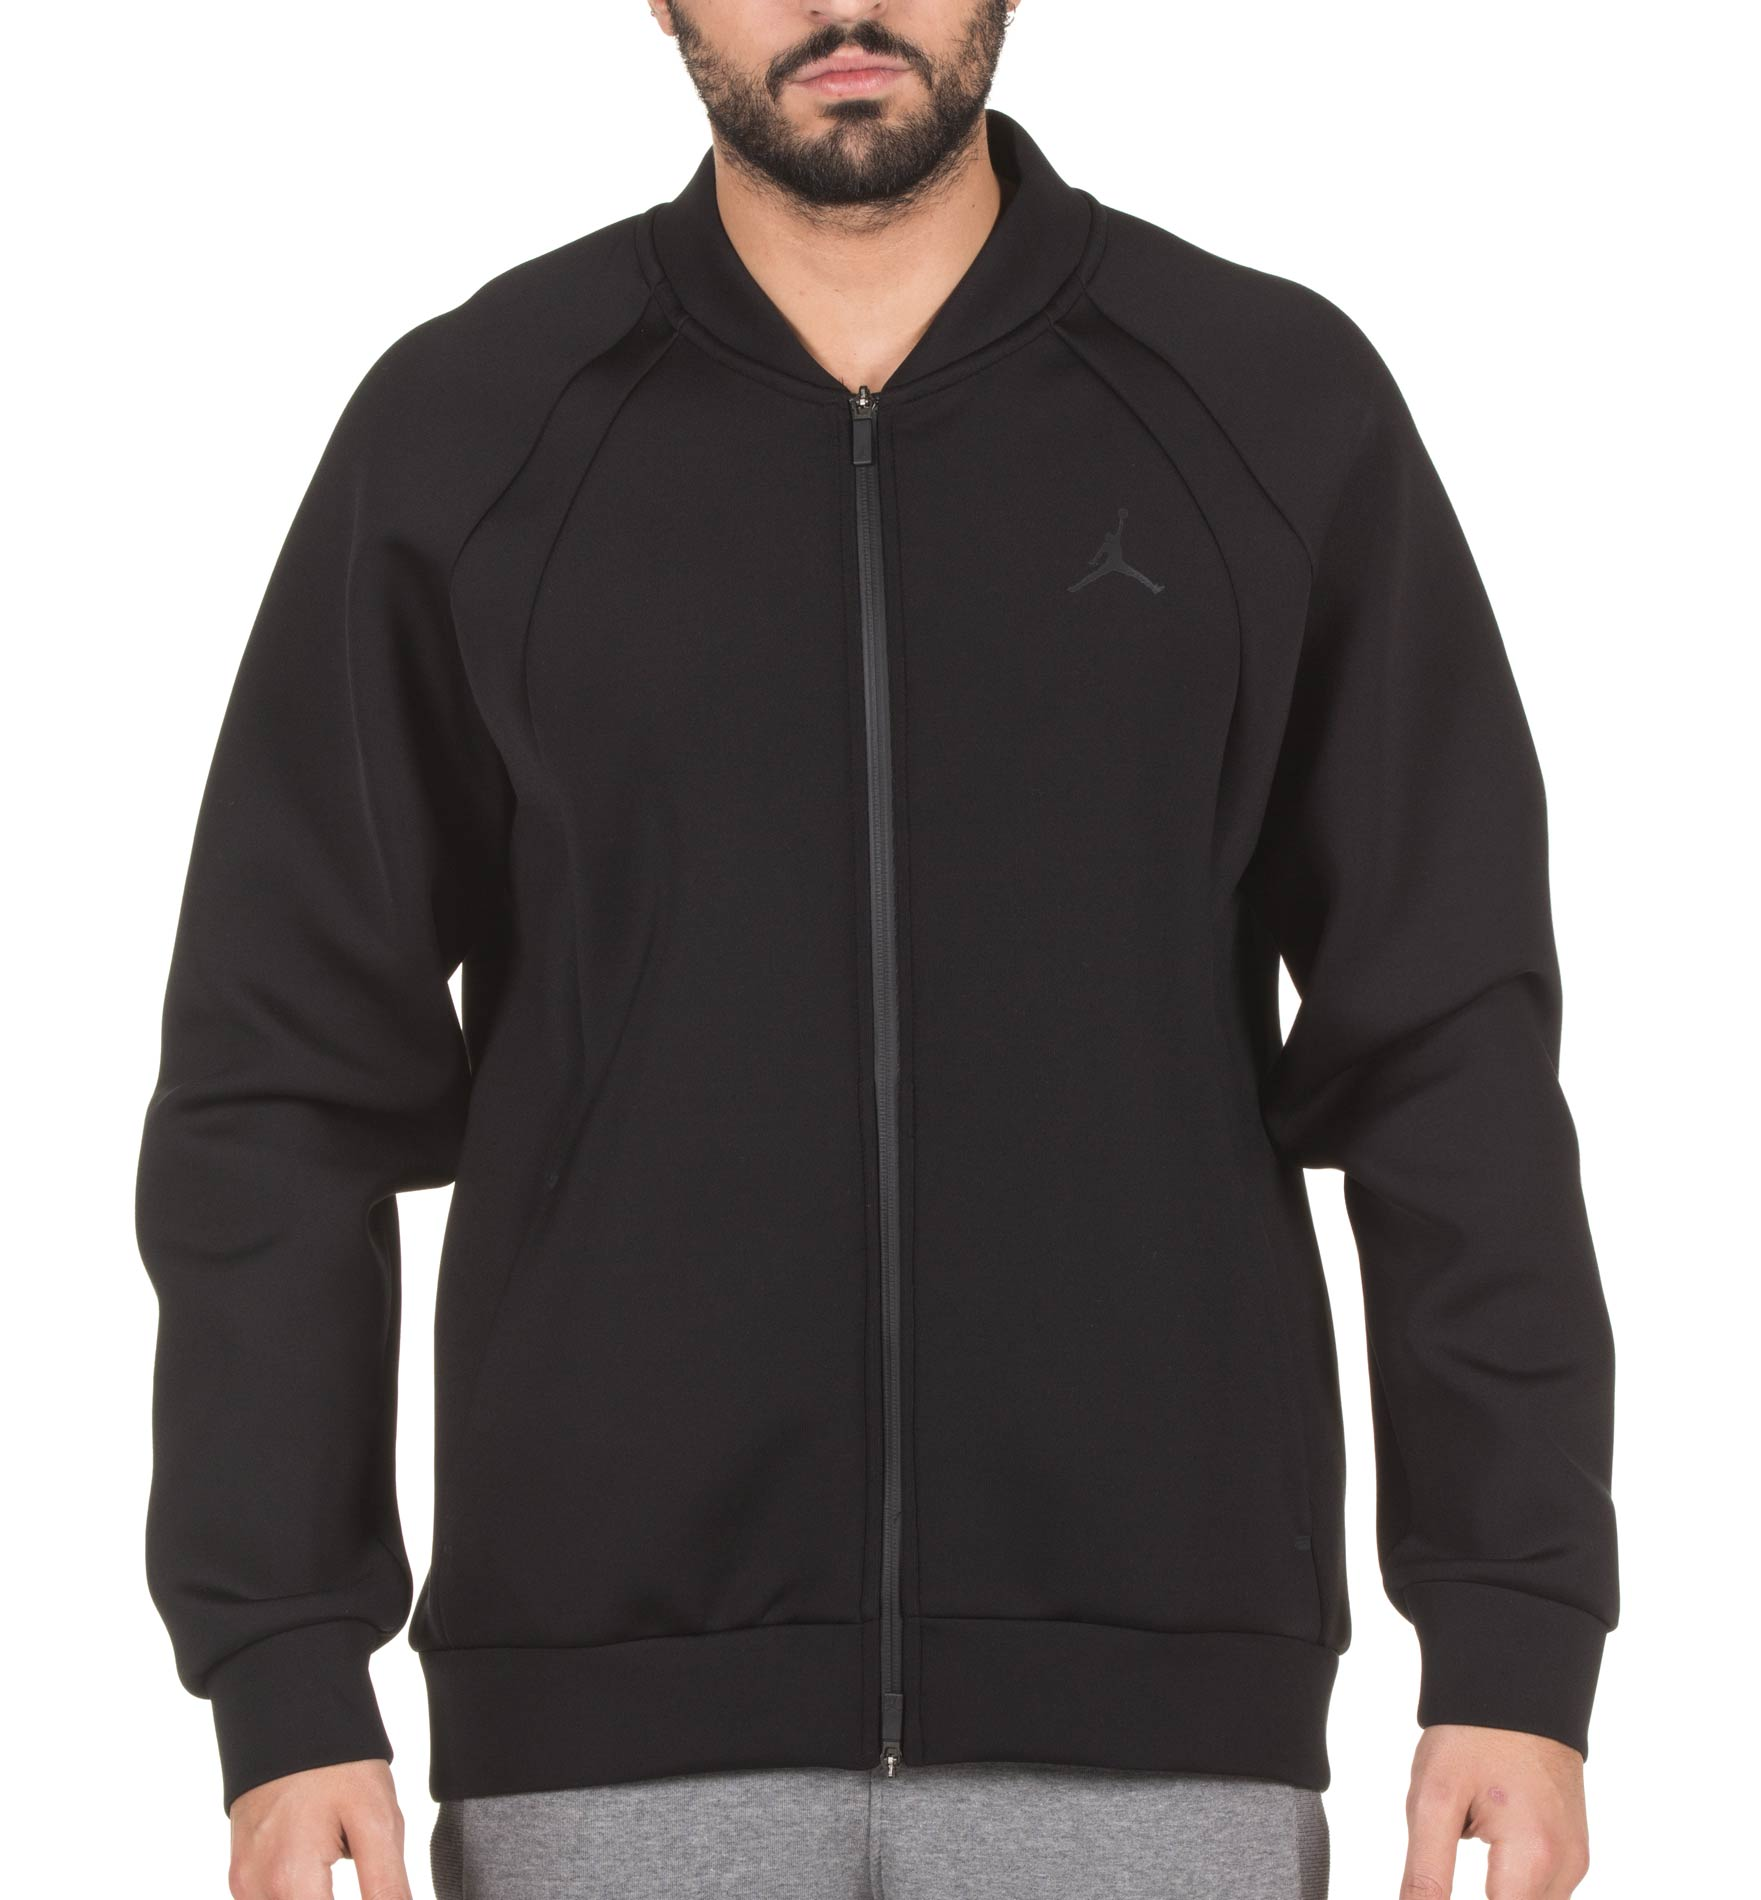 JORDAN 23 MODERN FLEECE JKT 887776-010 Μαύρο